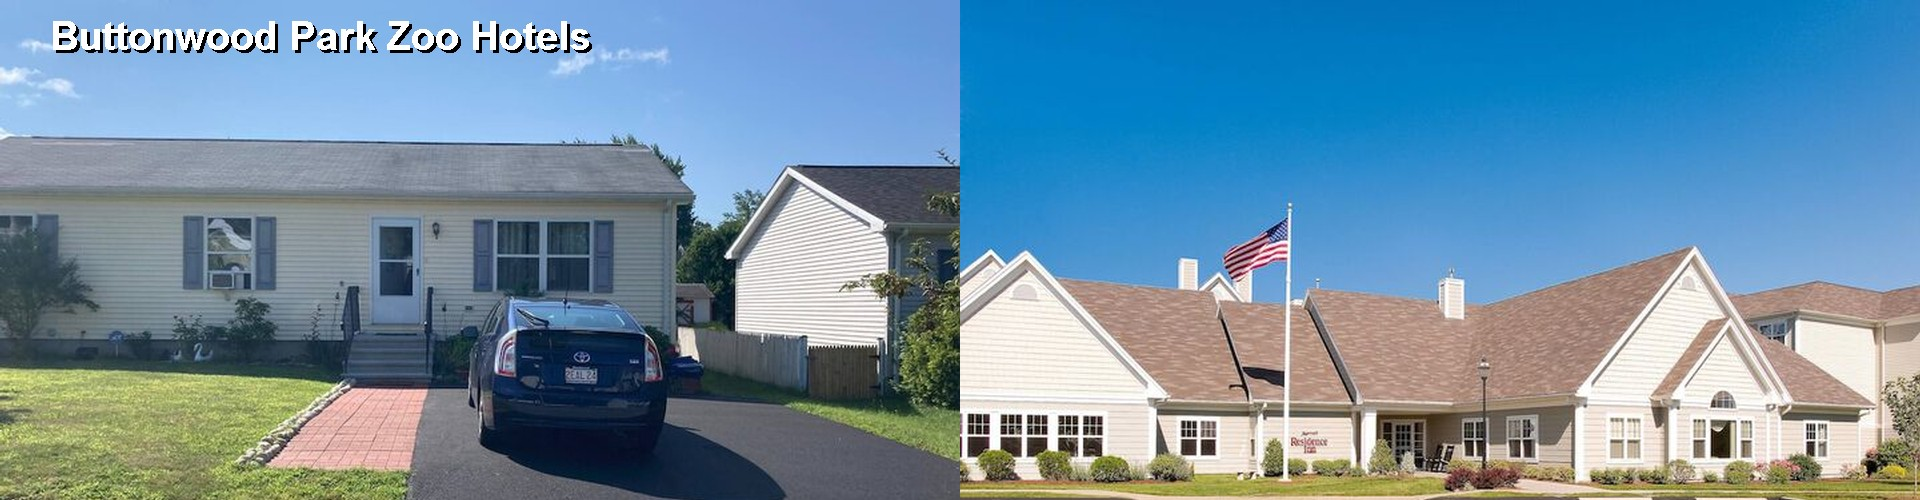 5 Best Hotels near Buttonwood Park Zoo